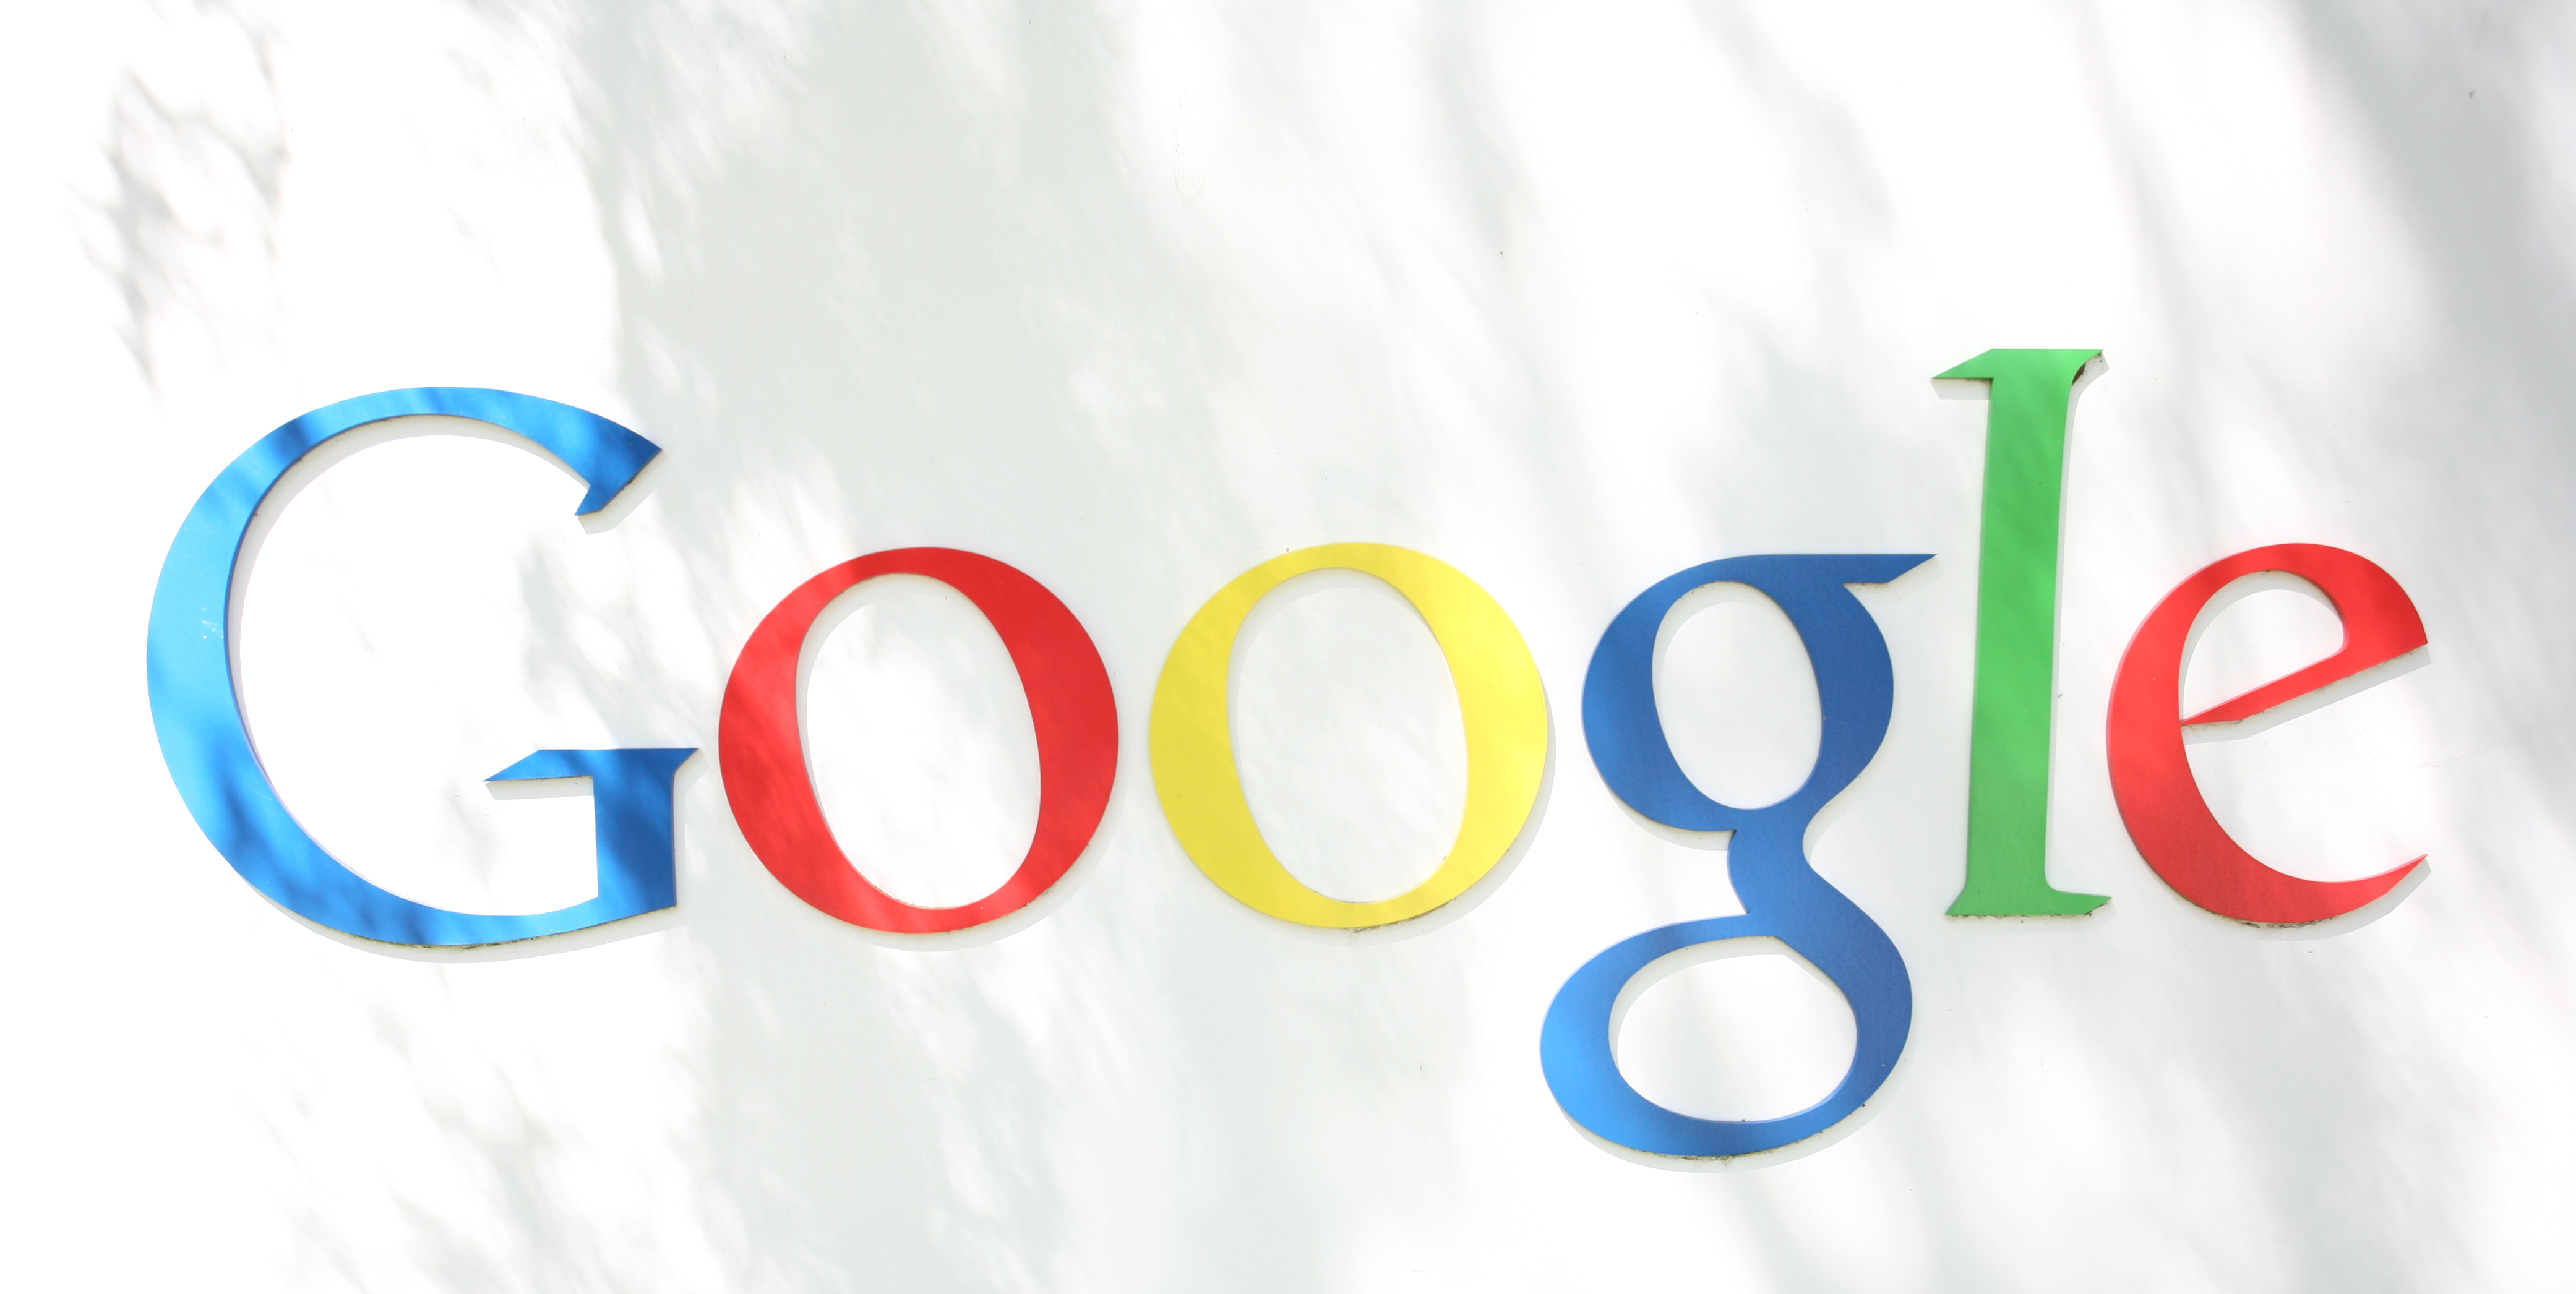 Is This Google's Next Logo?